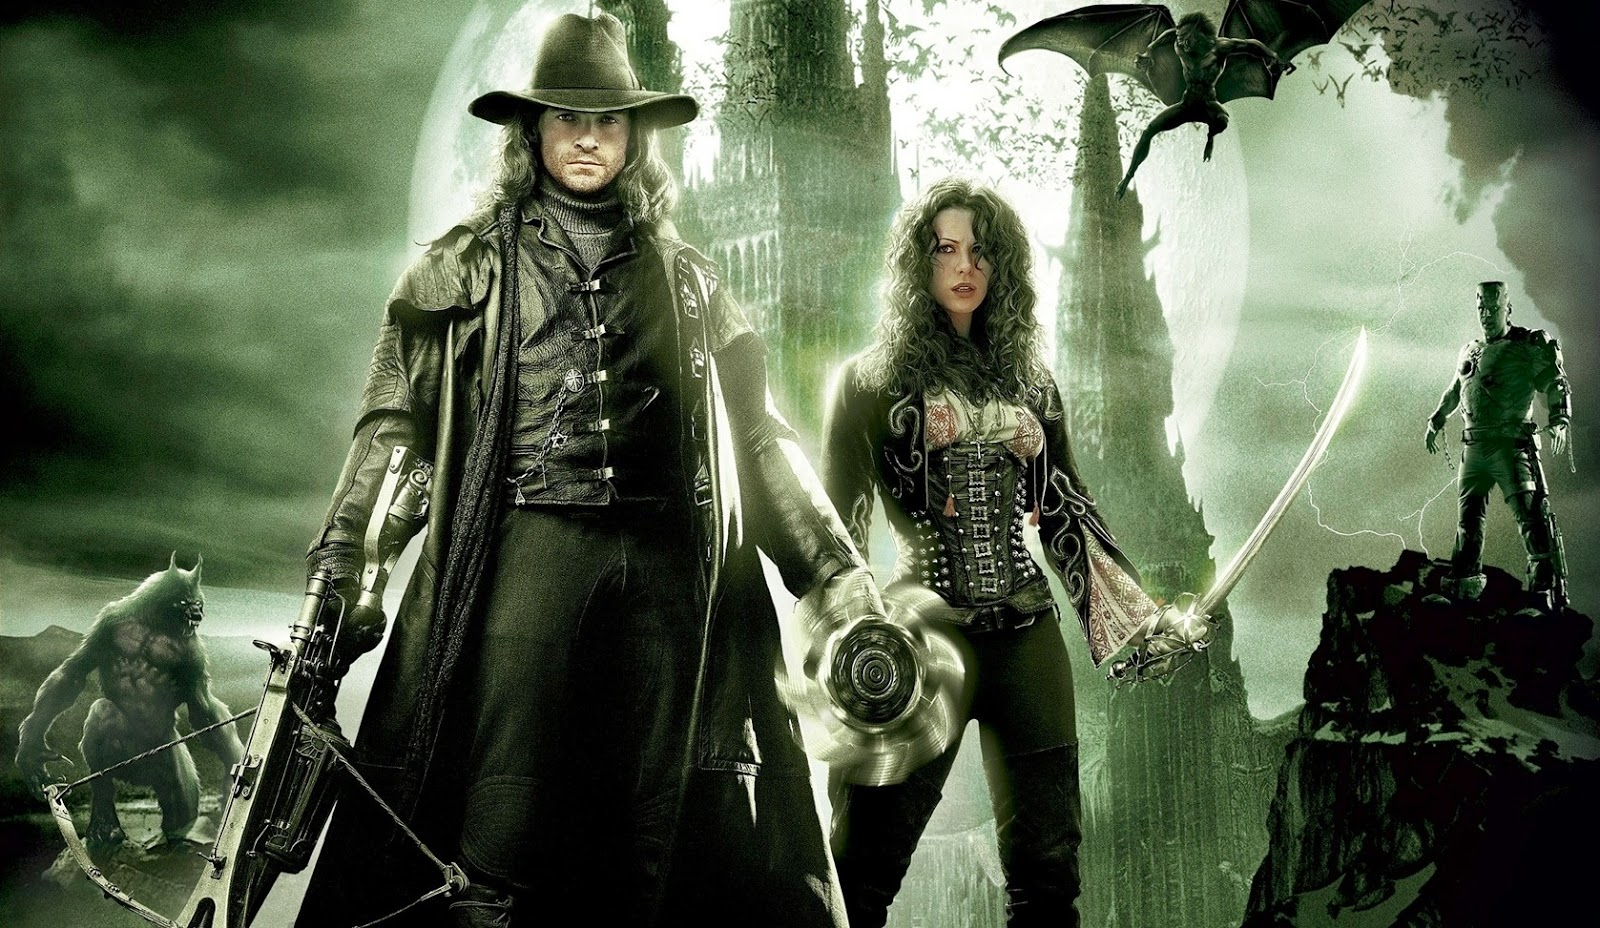 http://1.bp.blogspot.com/-ttPvKG-cNnA/T7MSqkq8uhI/AAAAAAAAGNs/B8B8jR_srXw/s1600/Hugh-Jackman-and-Kate-Beckinsale-in-Van-Helsing_1680x1050.jpg